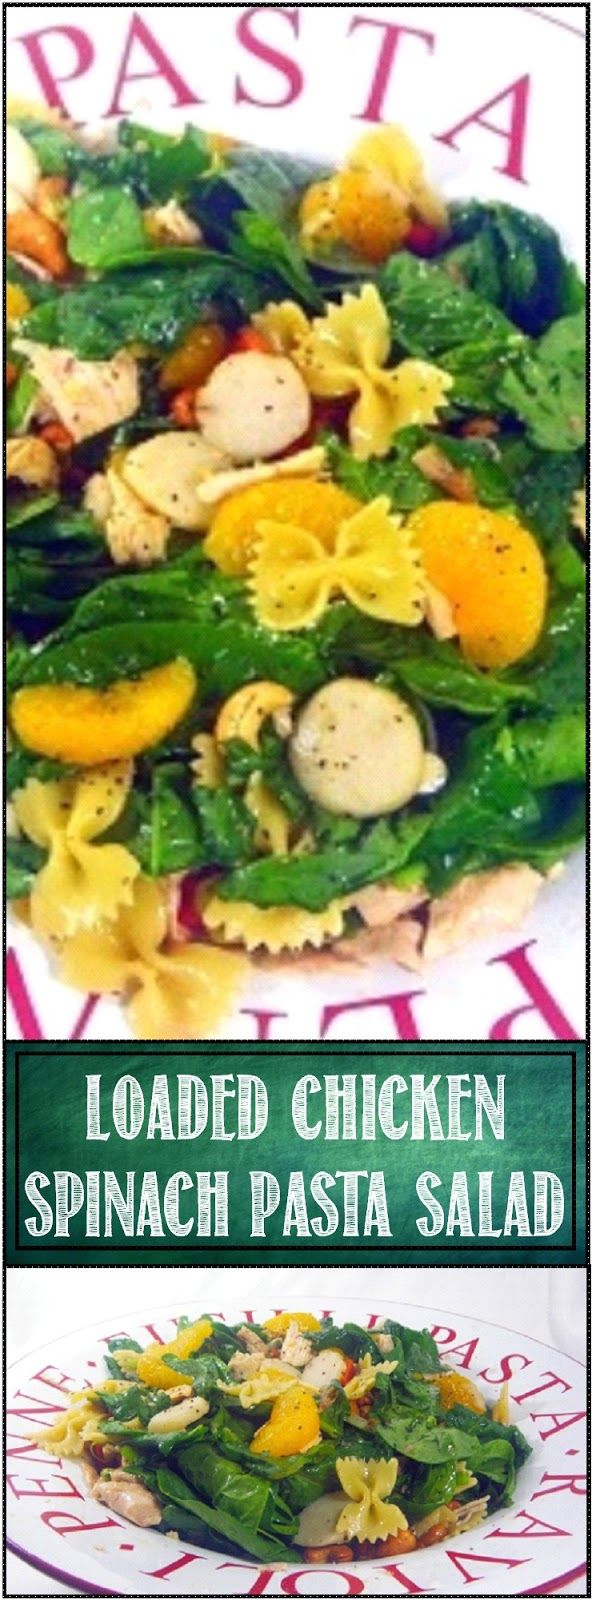 Inspired By eRecipeCards: LOADED Chicken Spinach Pasta Salad